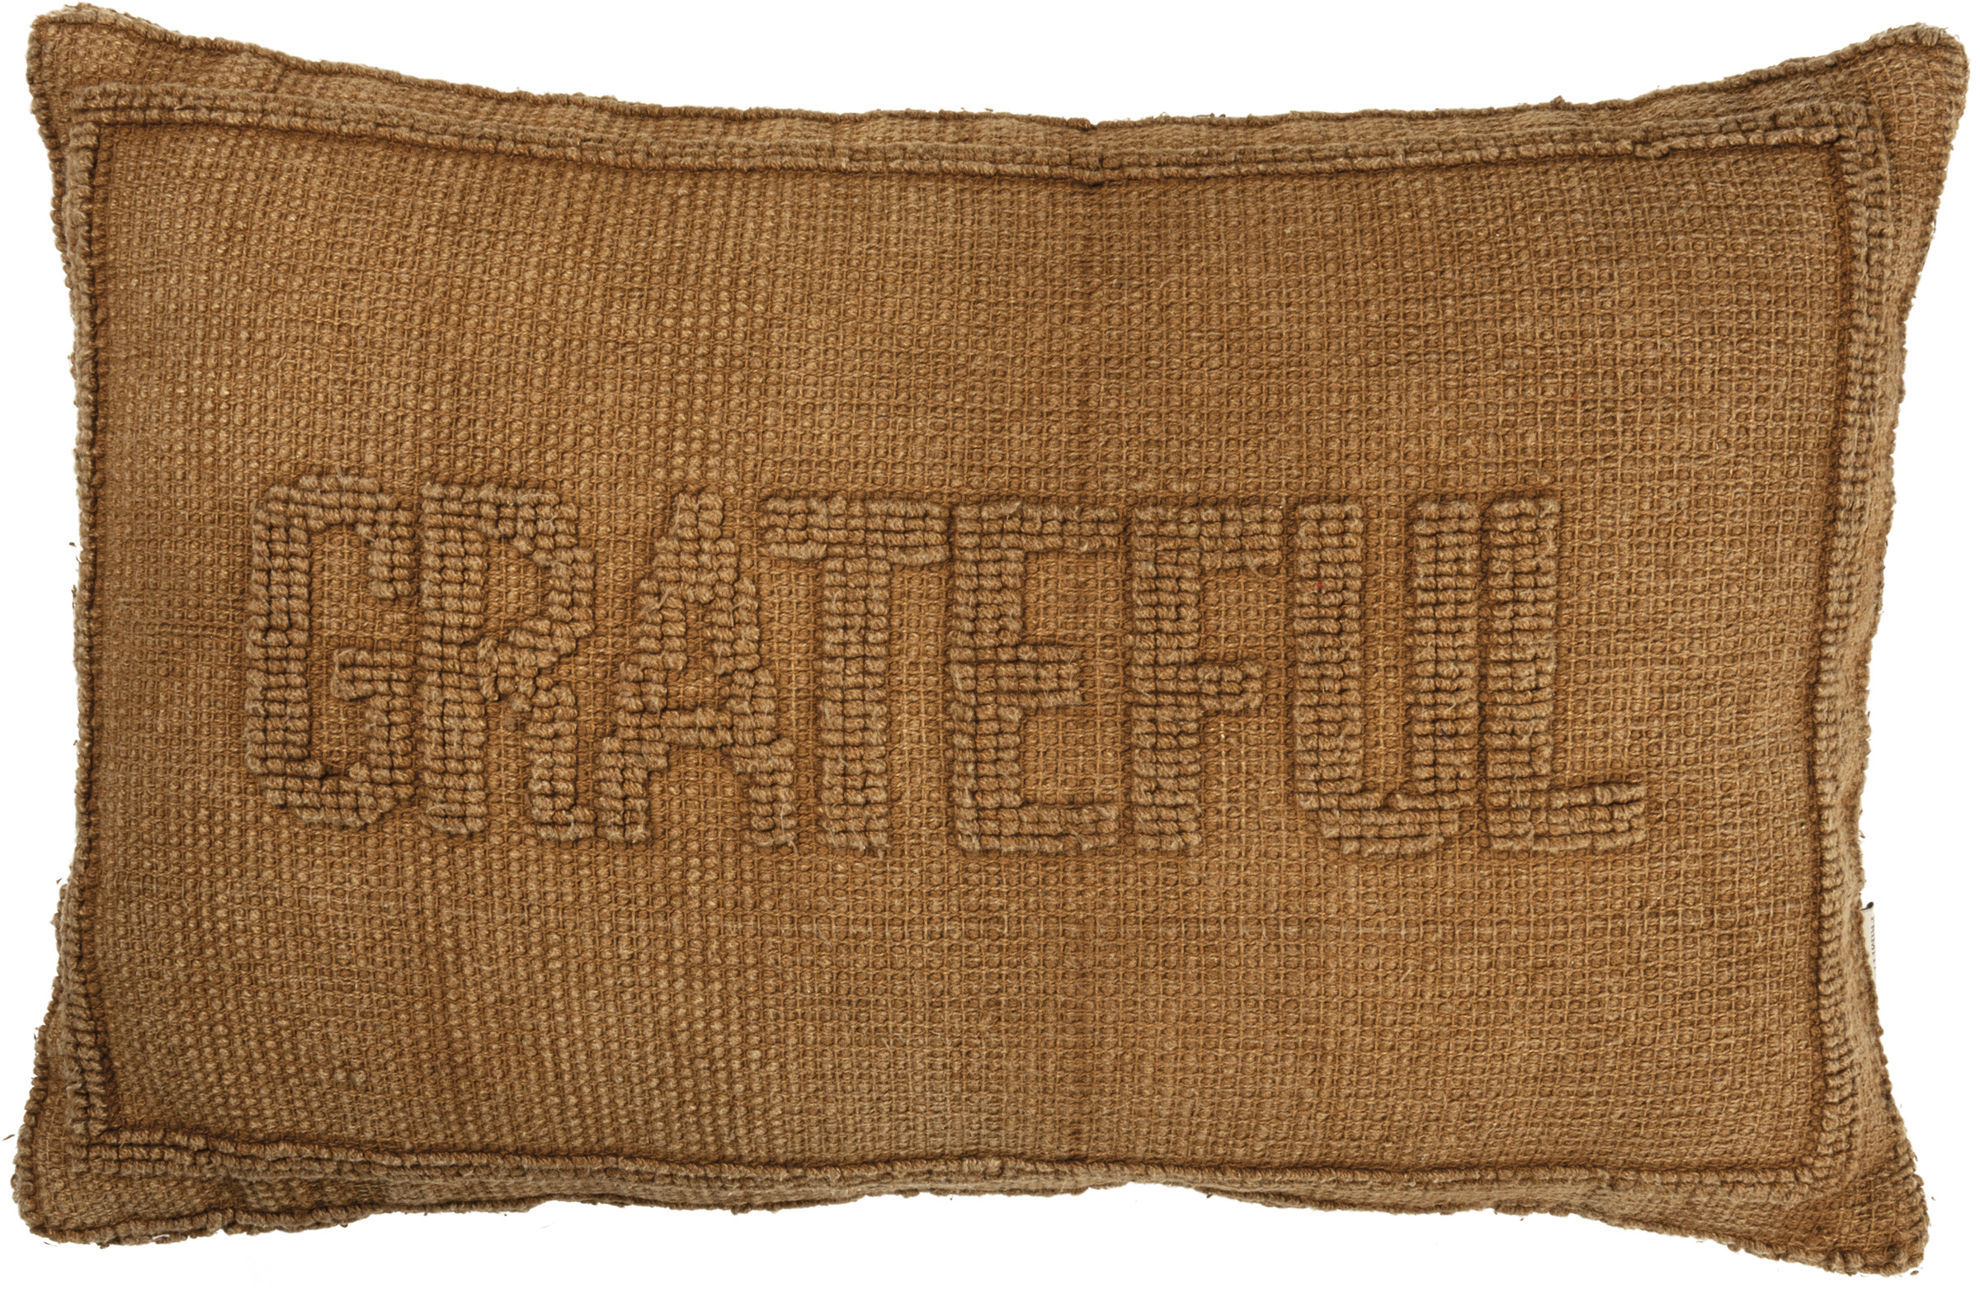 Grateful Pillow by Primitives by Kathy